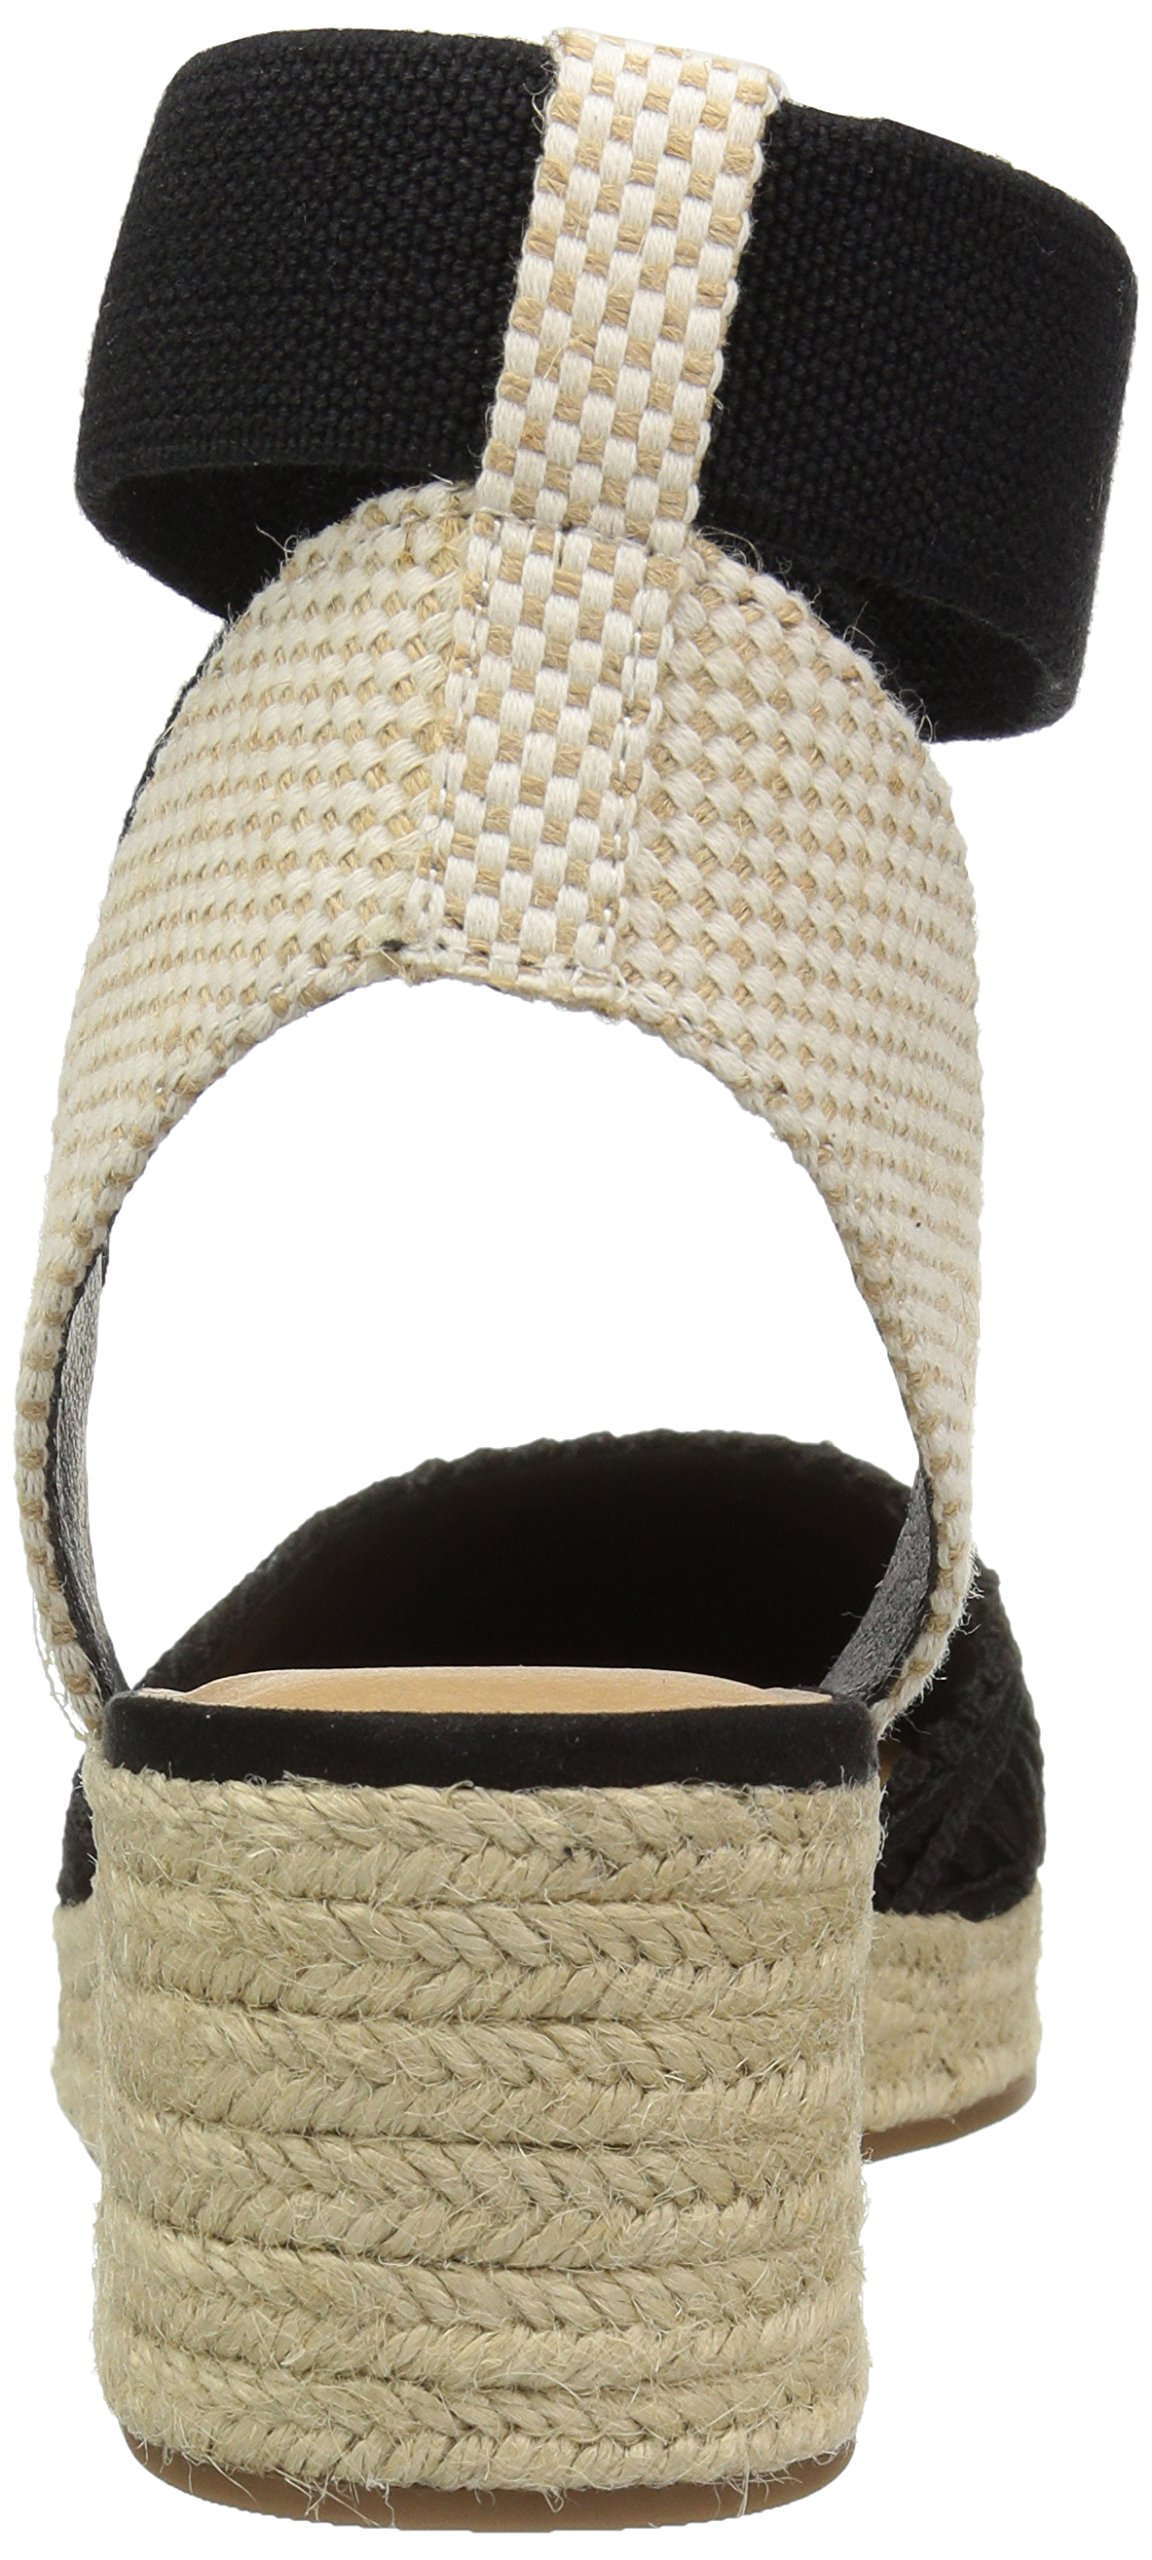 Lucky Brand Women's Luvinia Pump, Black, 7 M US by Lucky Brand (Image #2)